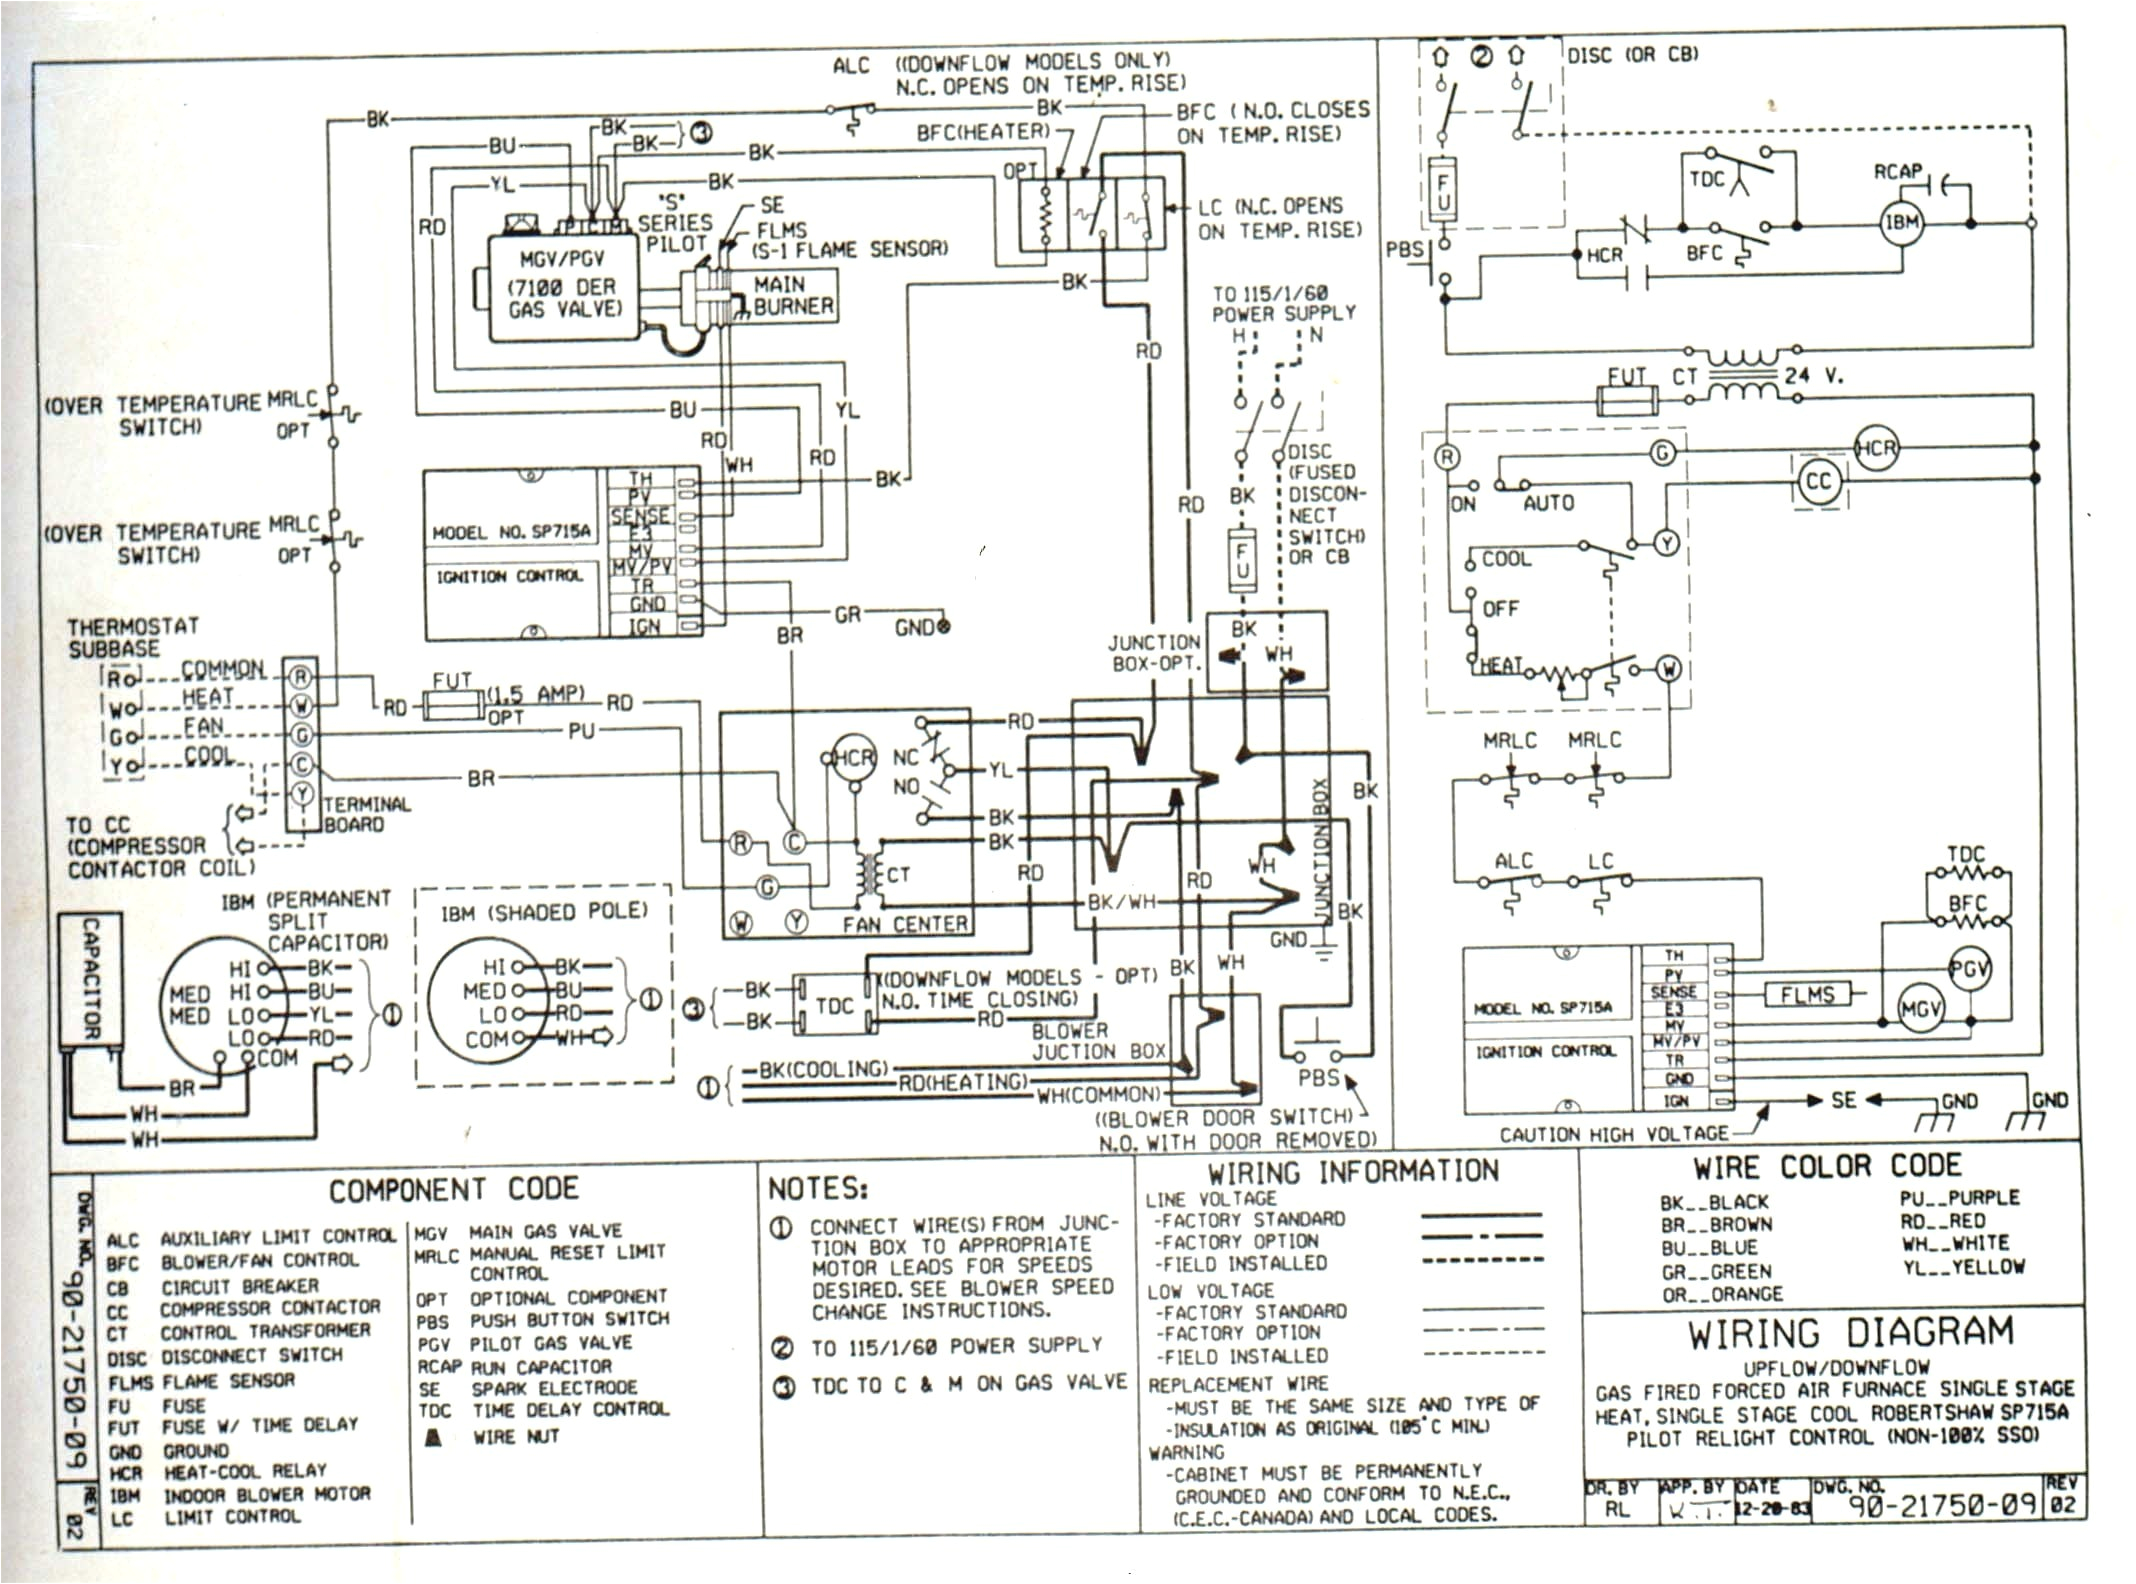 arcoaire furnace manual wiring diagram wiring diagrams structure arcoaire furnace wiring diagram arcoaire air conditioner wiring